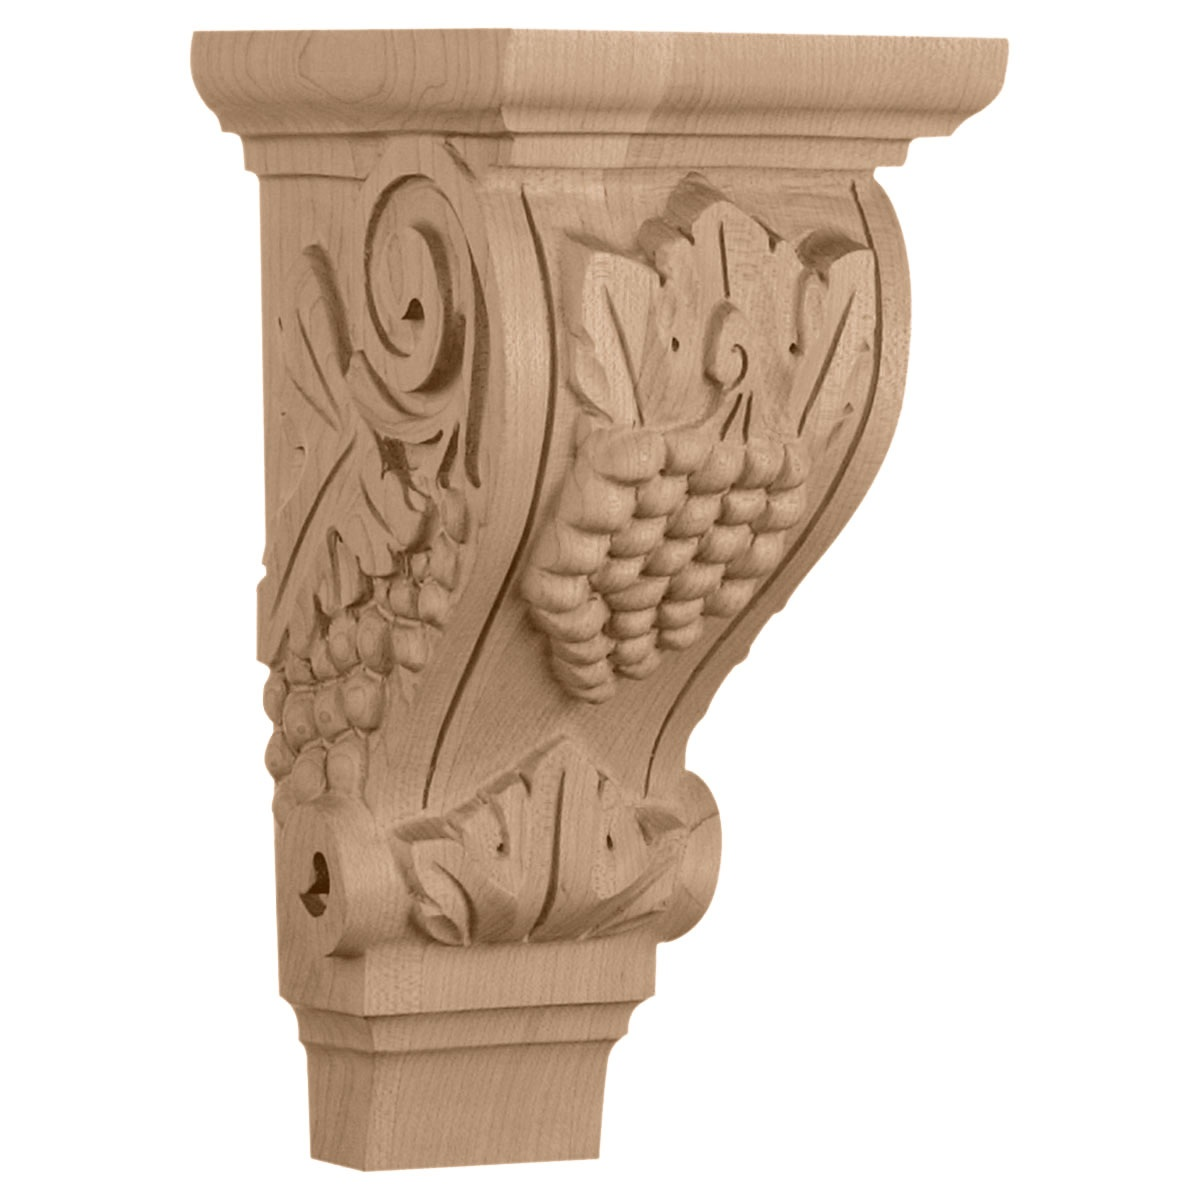 "CORGR2 Medium Grape Corbel 4 3/4""W x 5""D x 9 1/2""H"